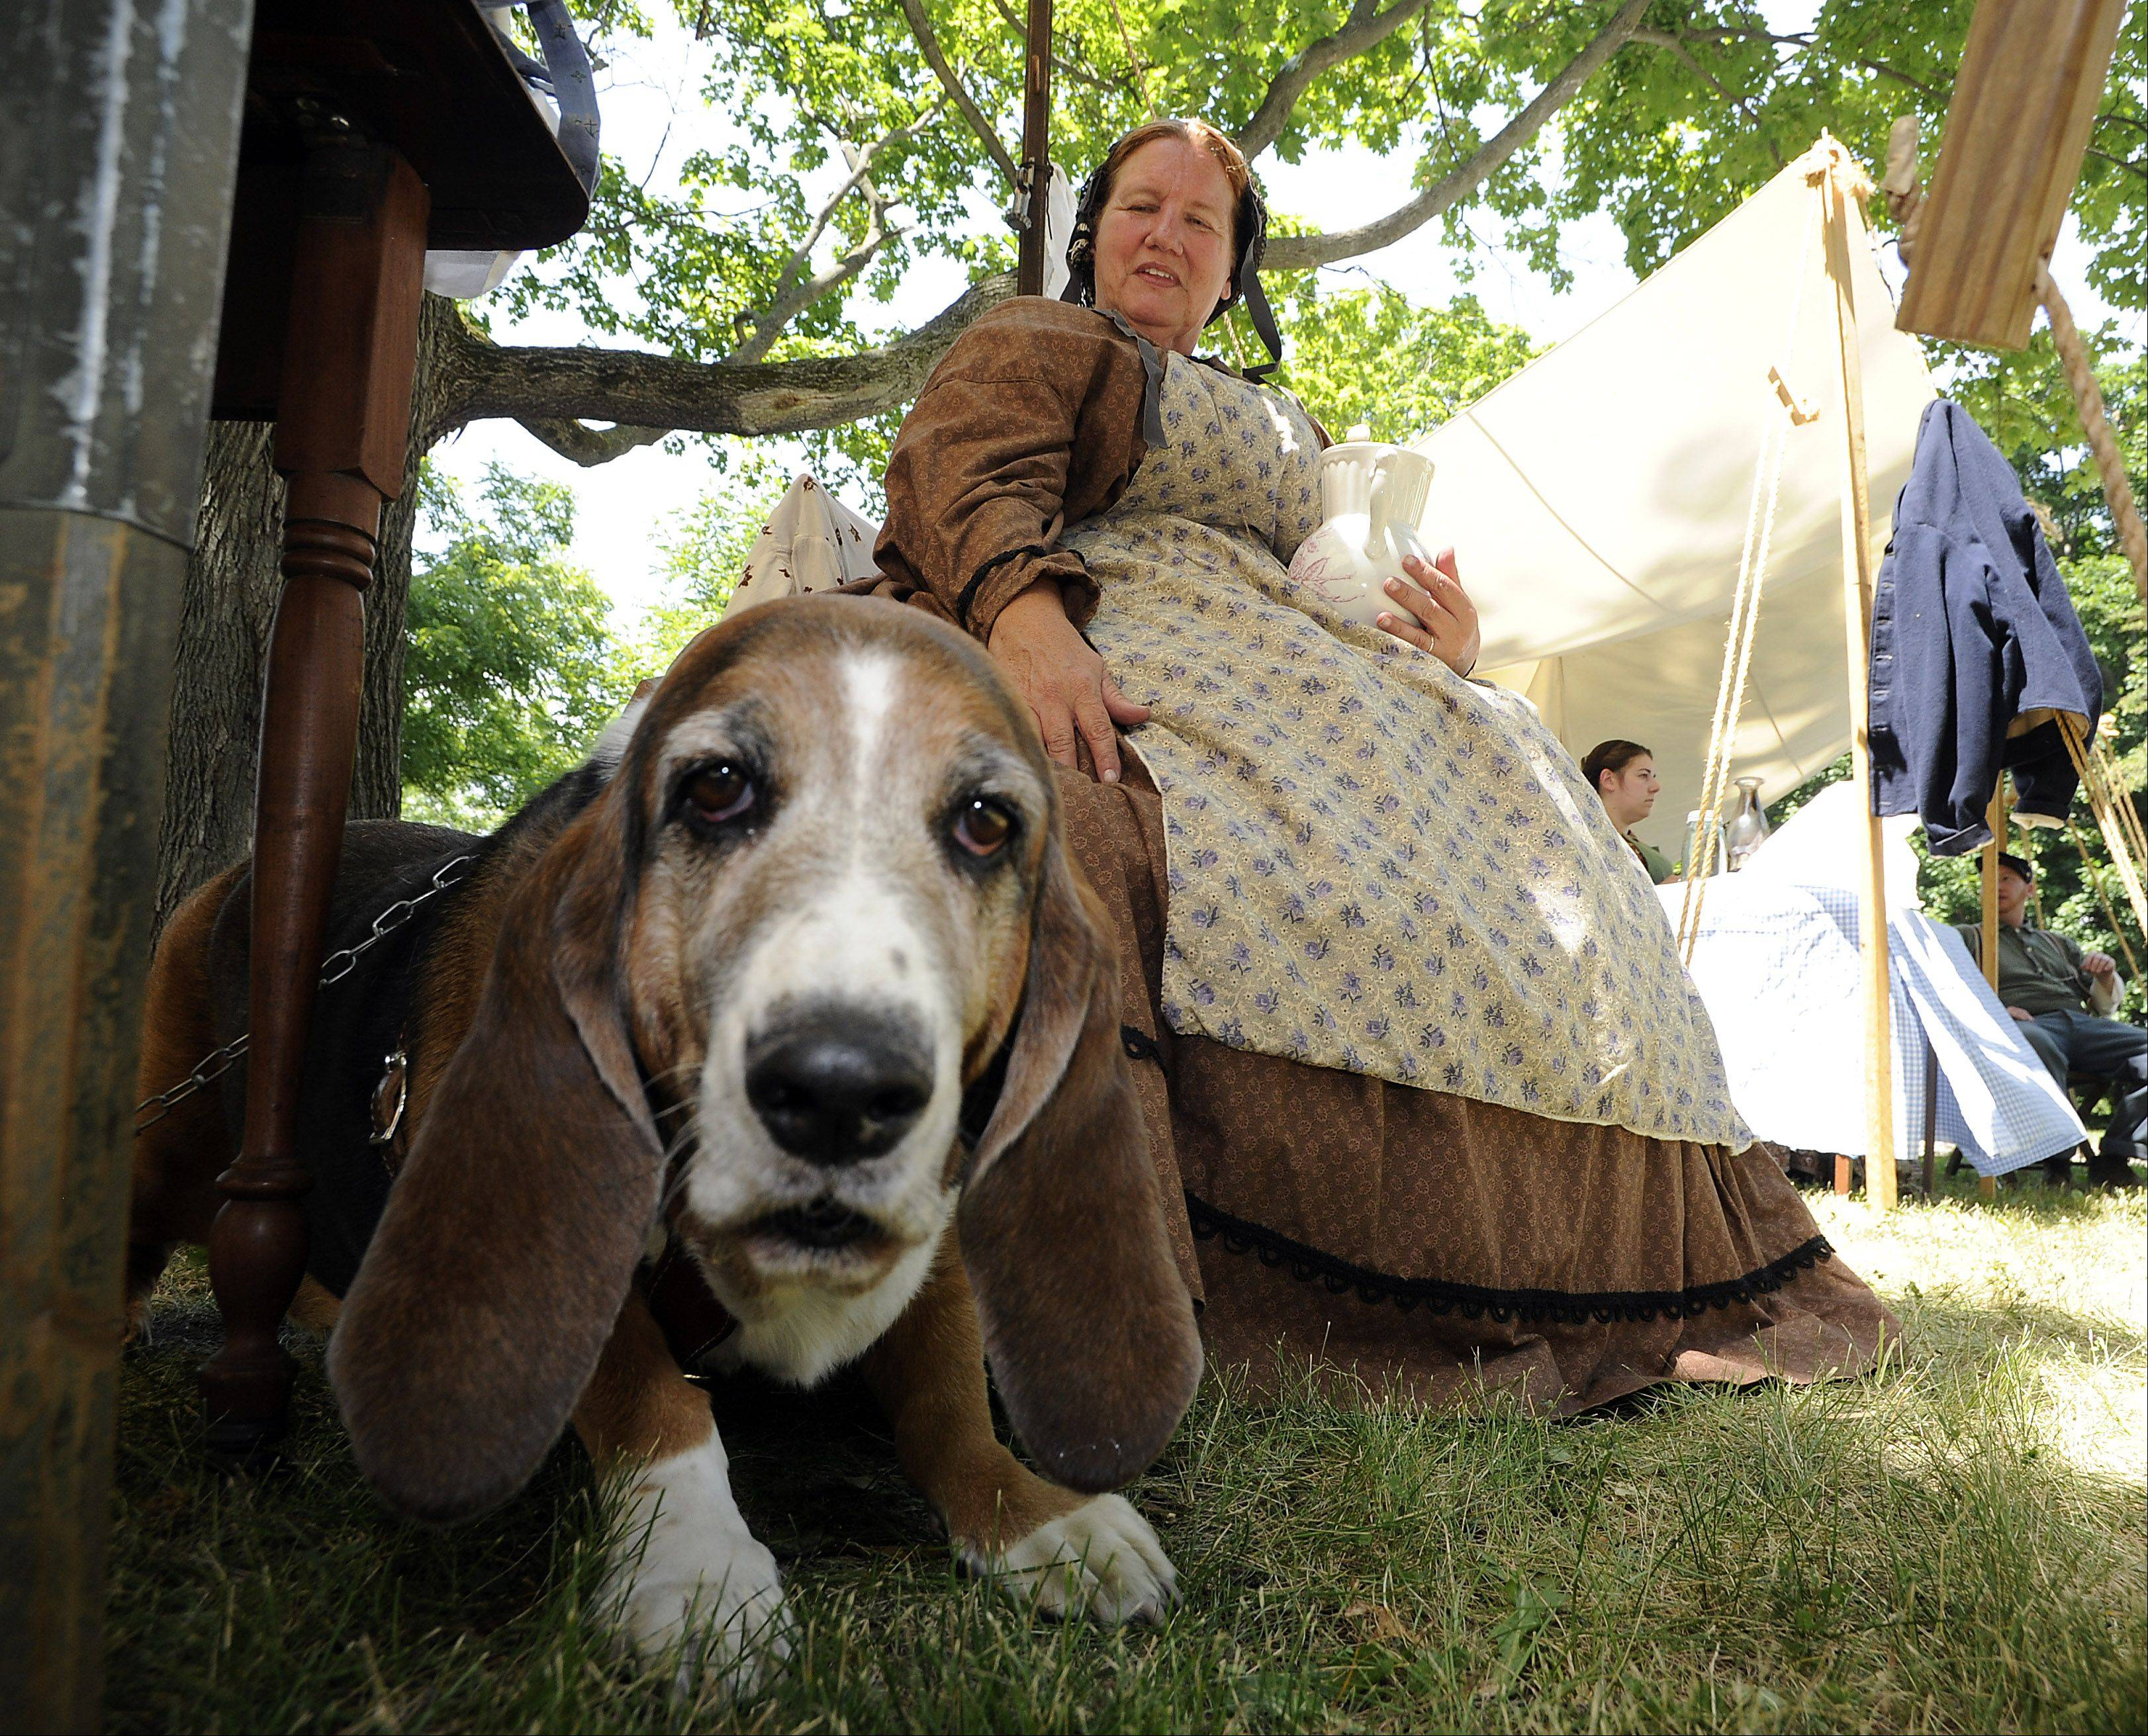 Michelle LaBarre of Manteno and her dog Ulysses S. Grant watch over the events of the day at the 20th annual Civil War days at the Lake County Forest Preserve on Saturday.